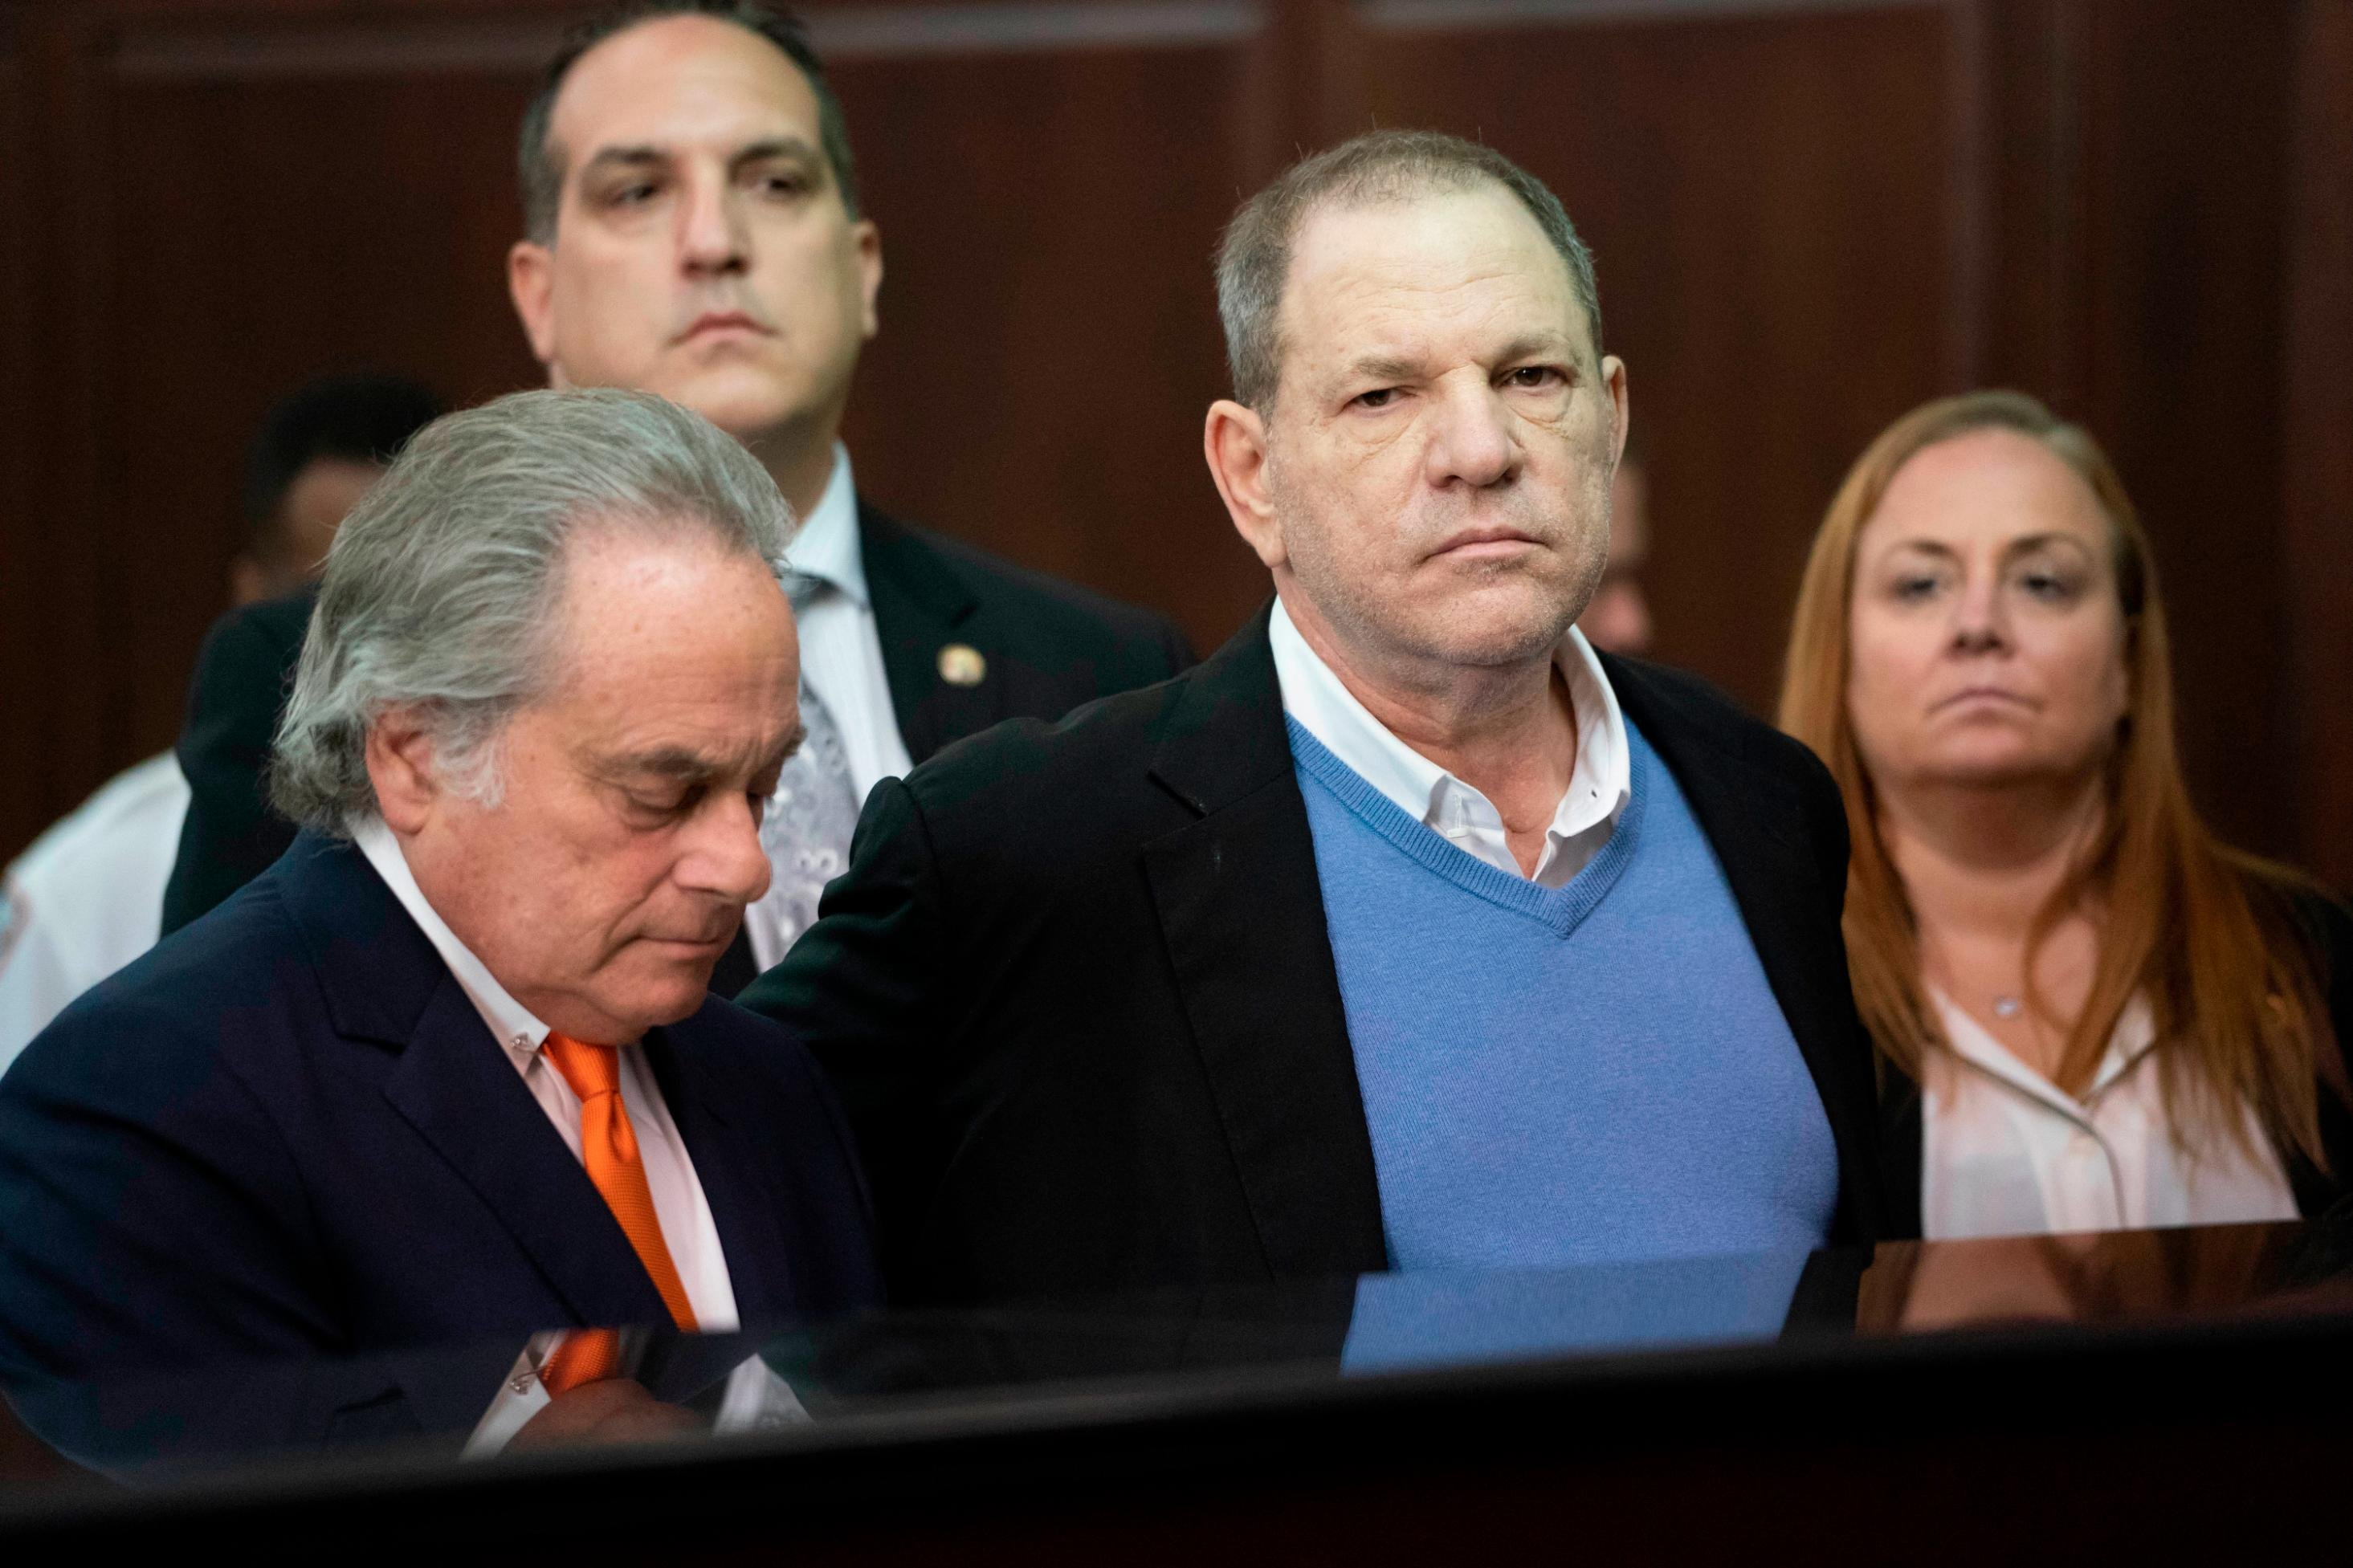 Weinstein's lawyer says his criminal trial is expected to take at least two months